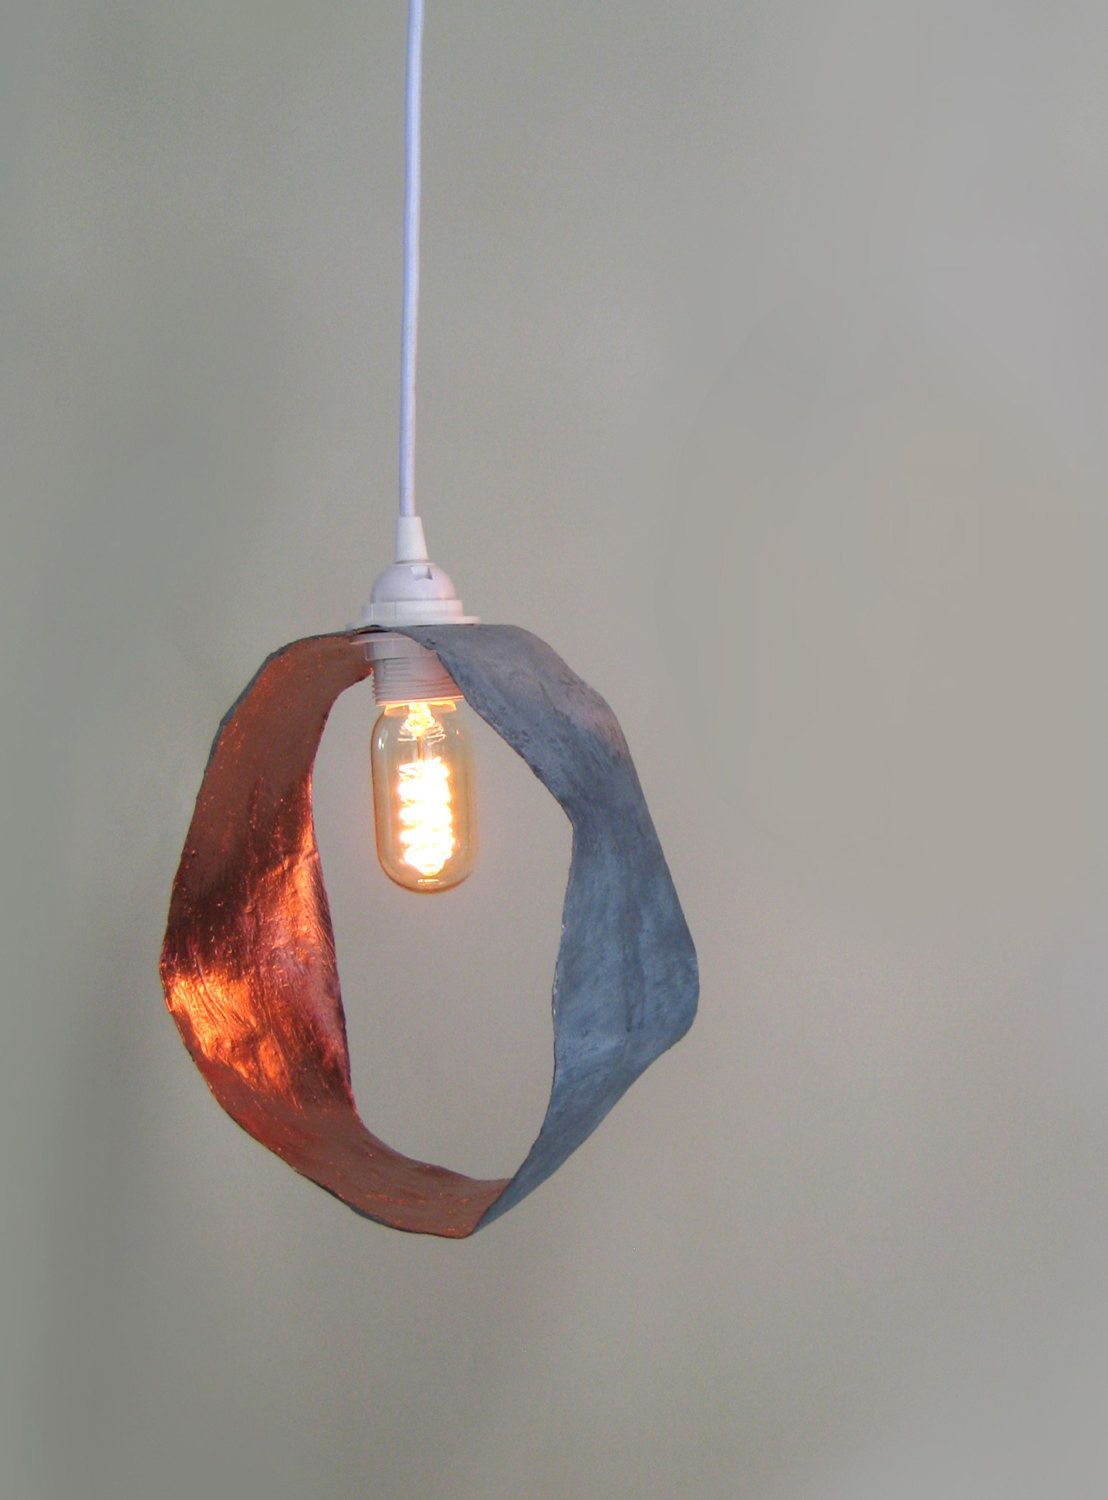 Eco friendly paper mache loop plug in pendant light grey copper eco friendly paper mache loop plug in pendant light grey copper lamp shade white braided fabric cord 3 core wire e27 lamp holder by fatroo on e arubaitofo Images